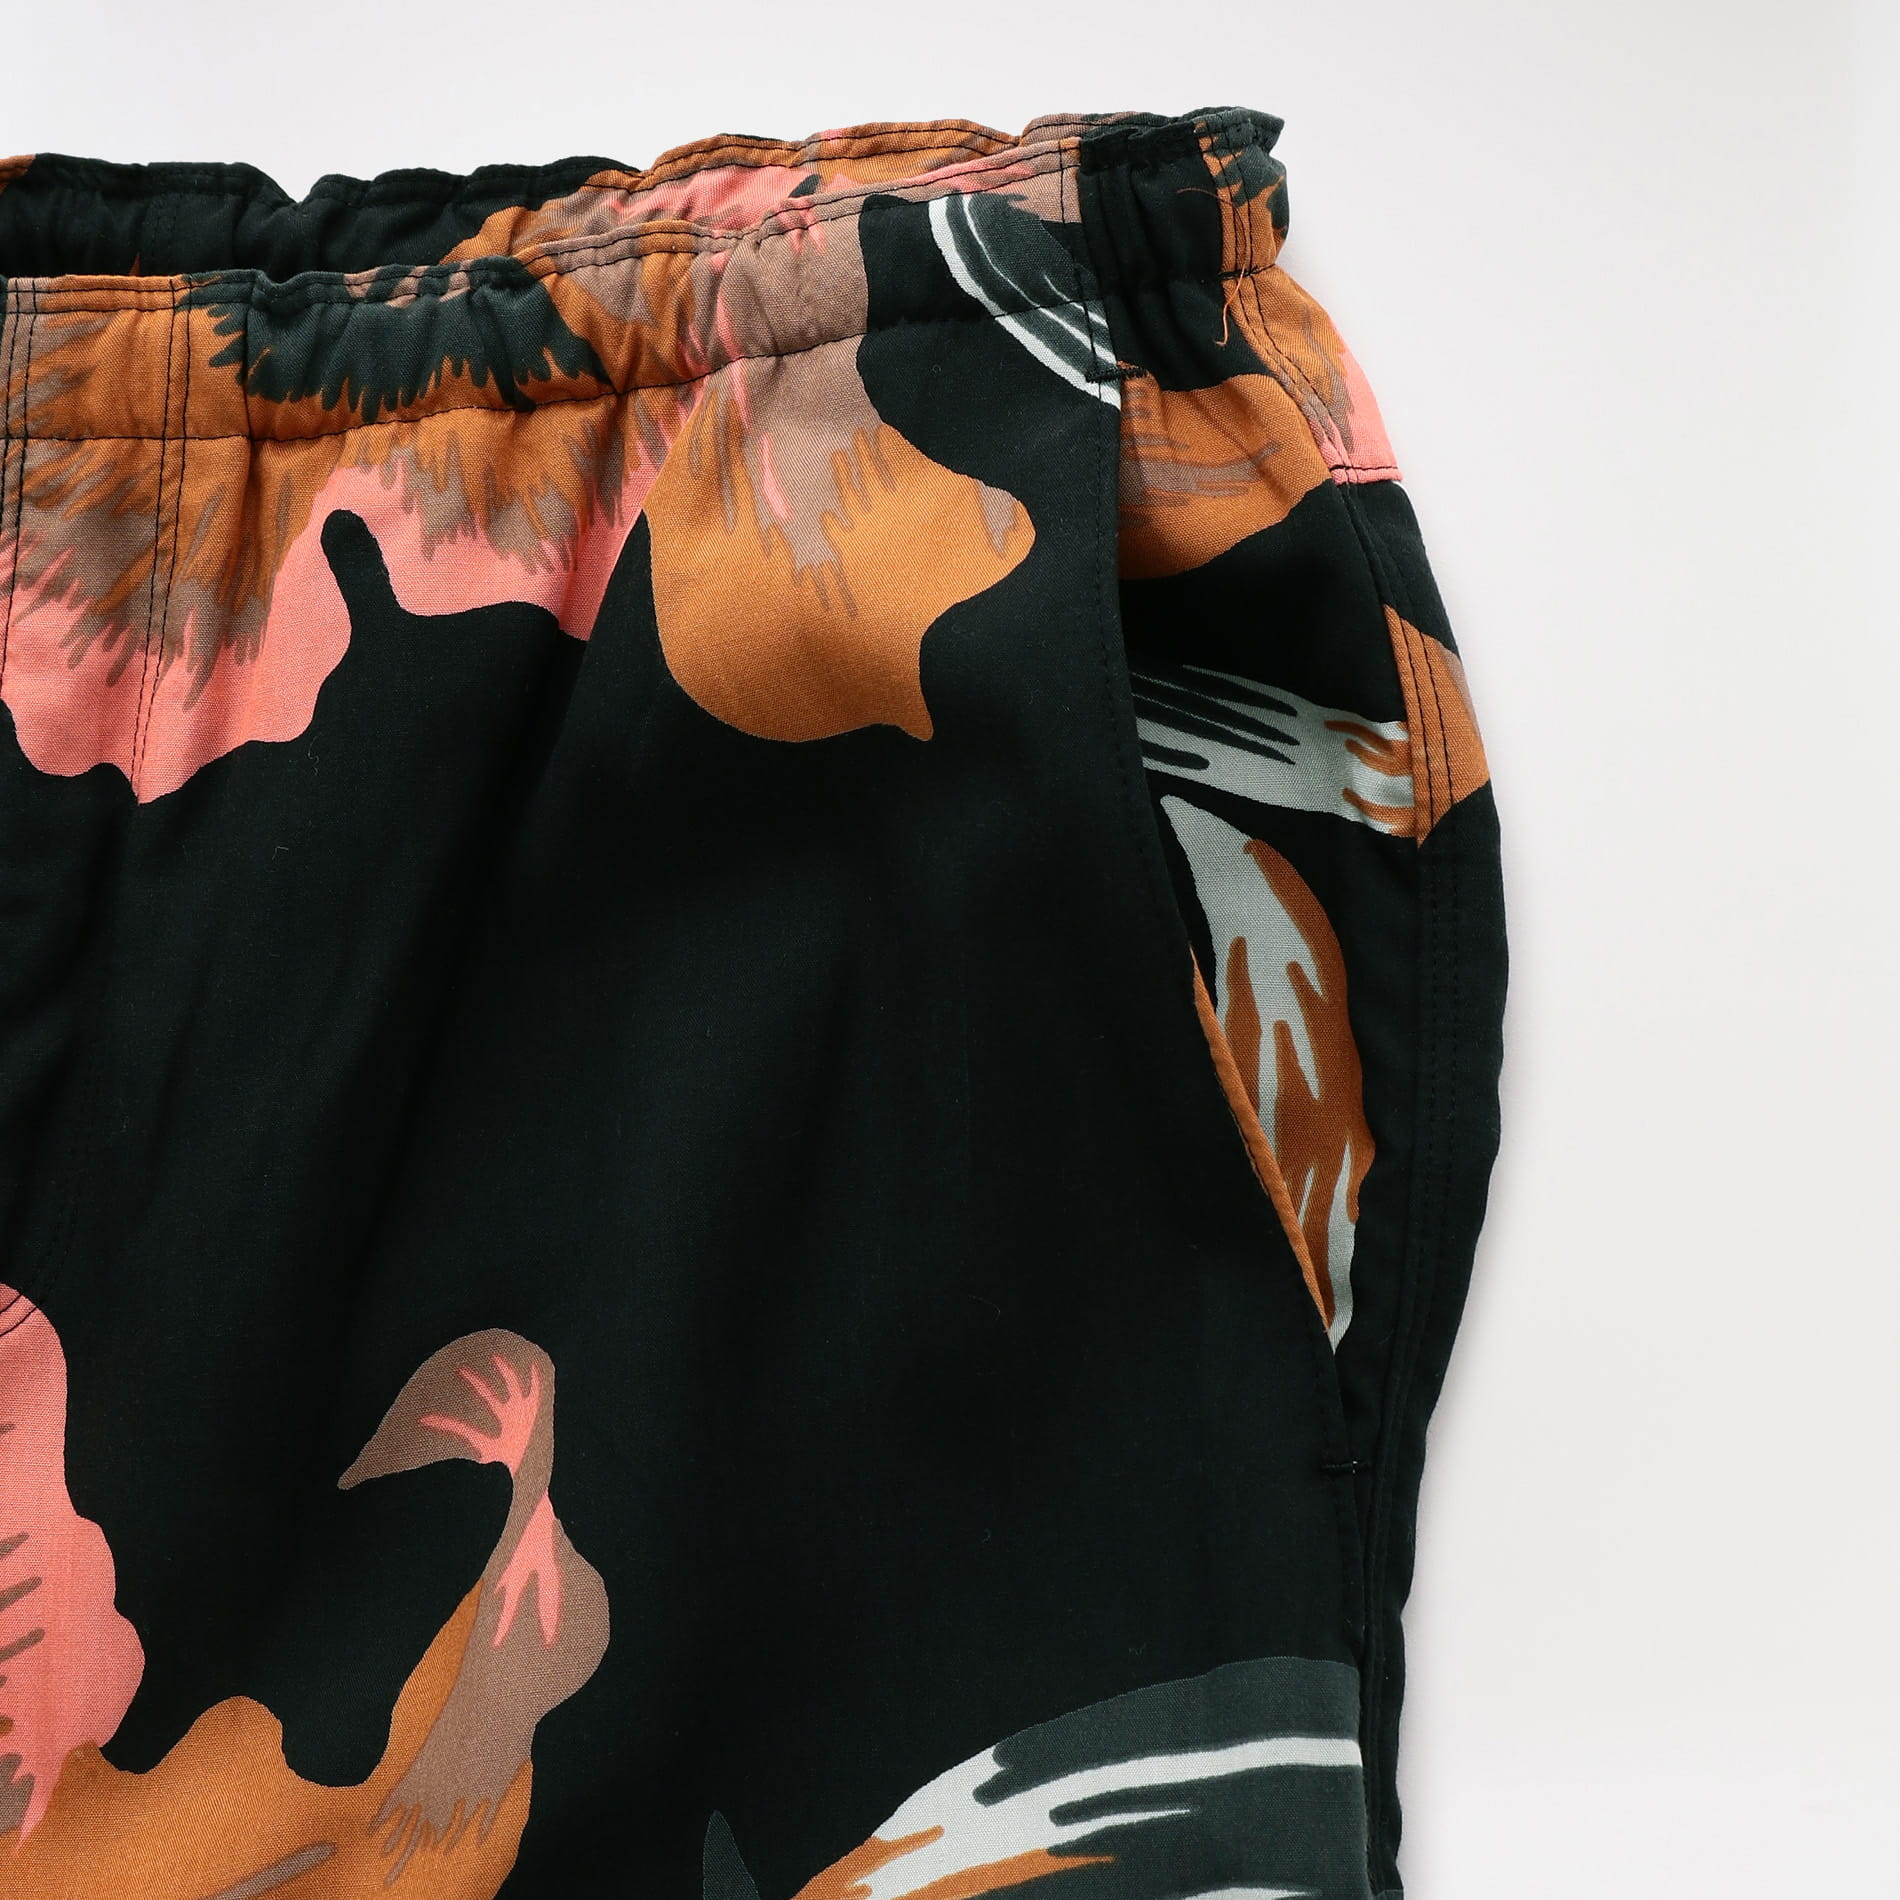 【NOMA t.d.】WOMEN Beach Short Floral Black Floral of Memories SPT04